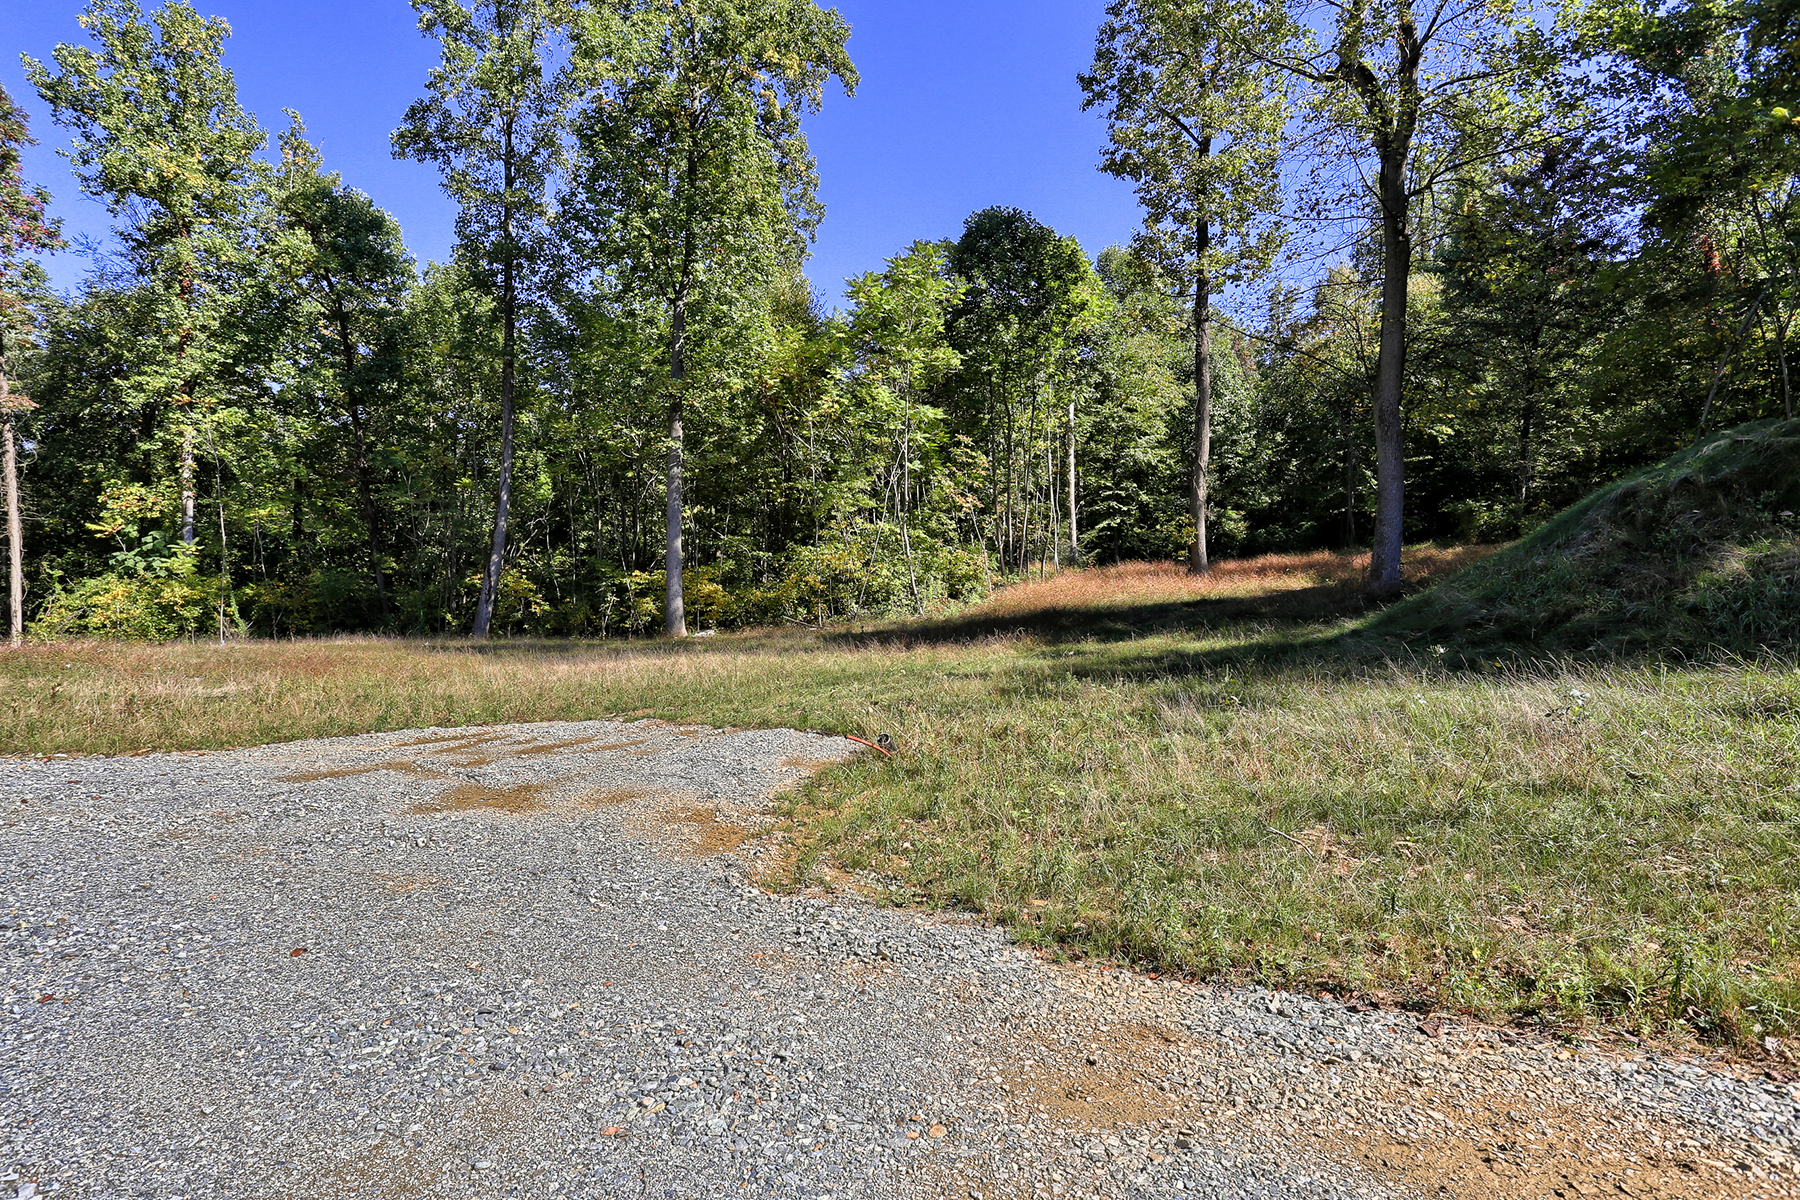 Land for Sale at Hilldale Estates 77 Hilldale Road lot 8 Pequea, Pennsylvania 17565 United States